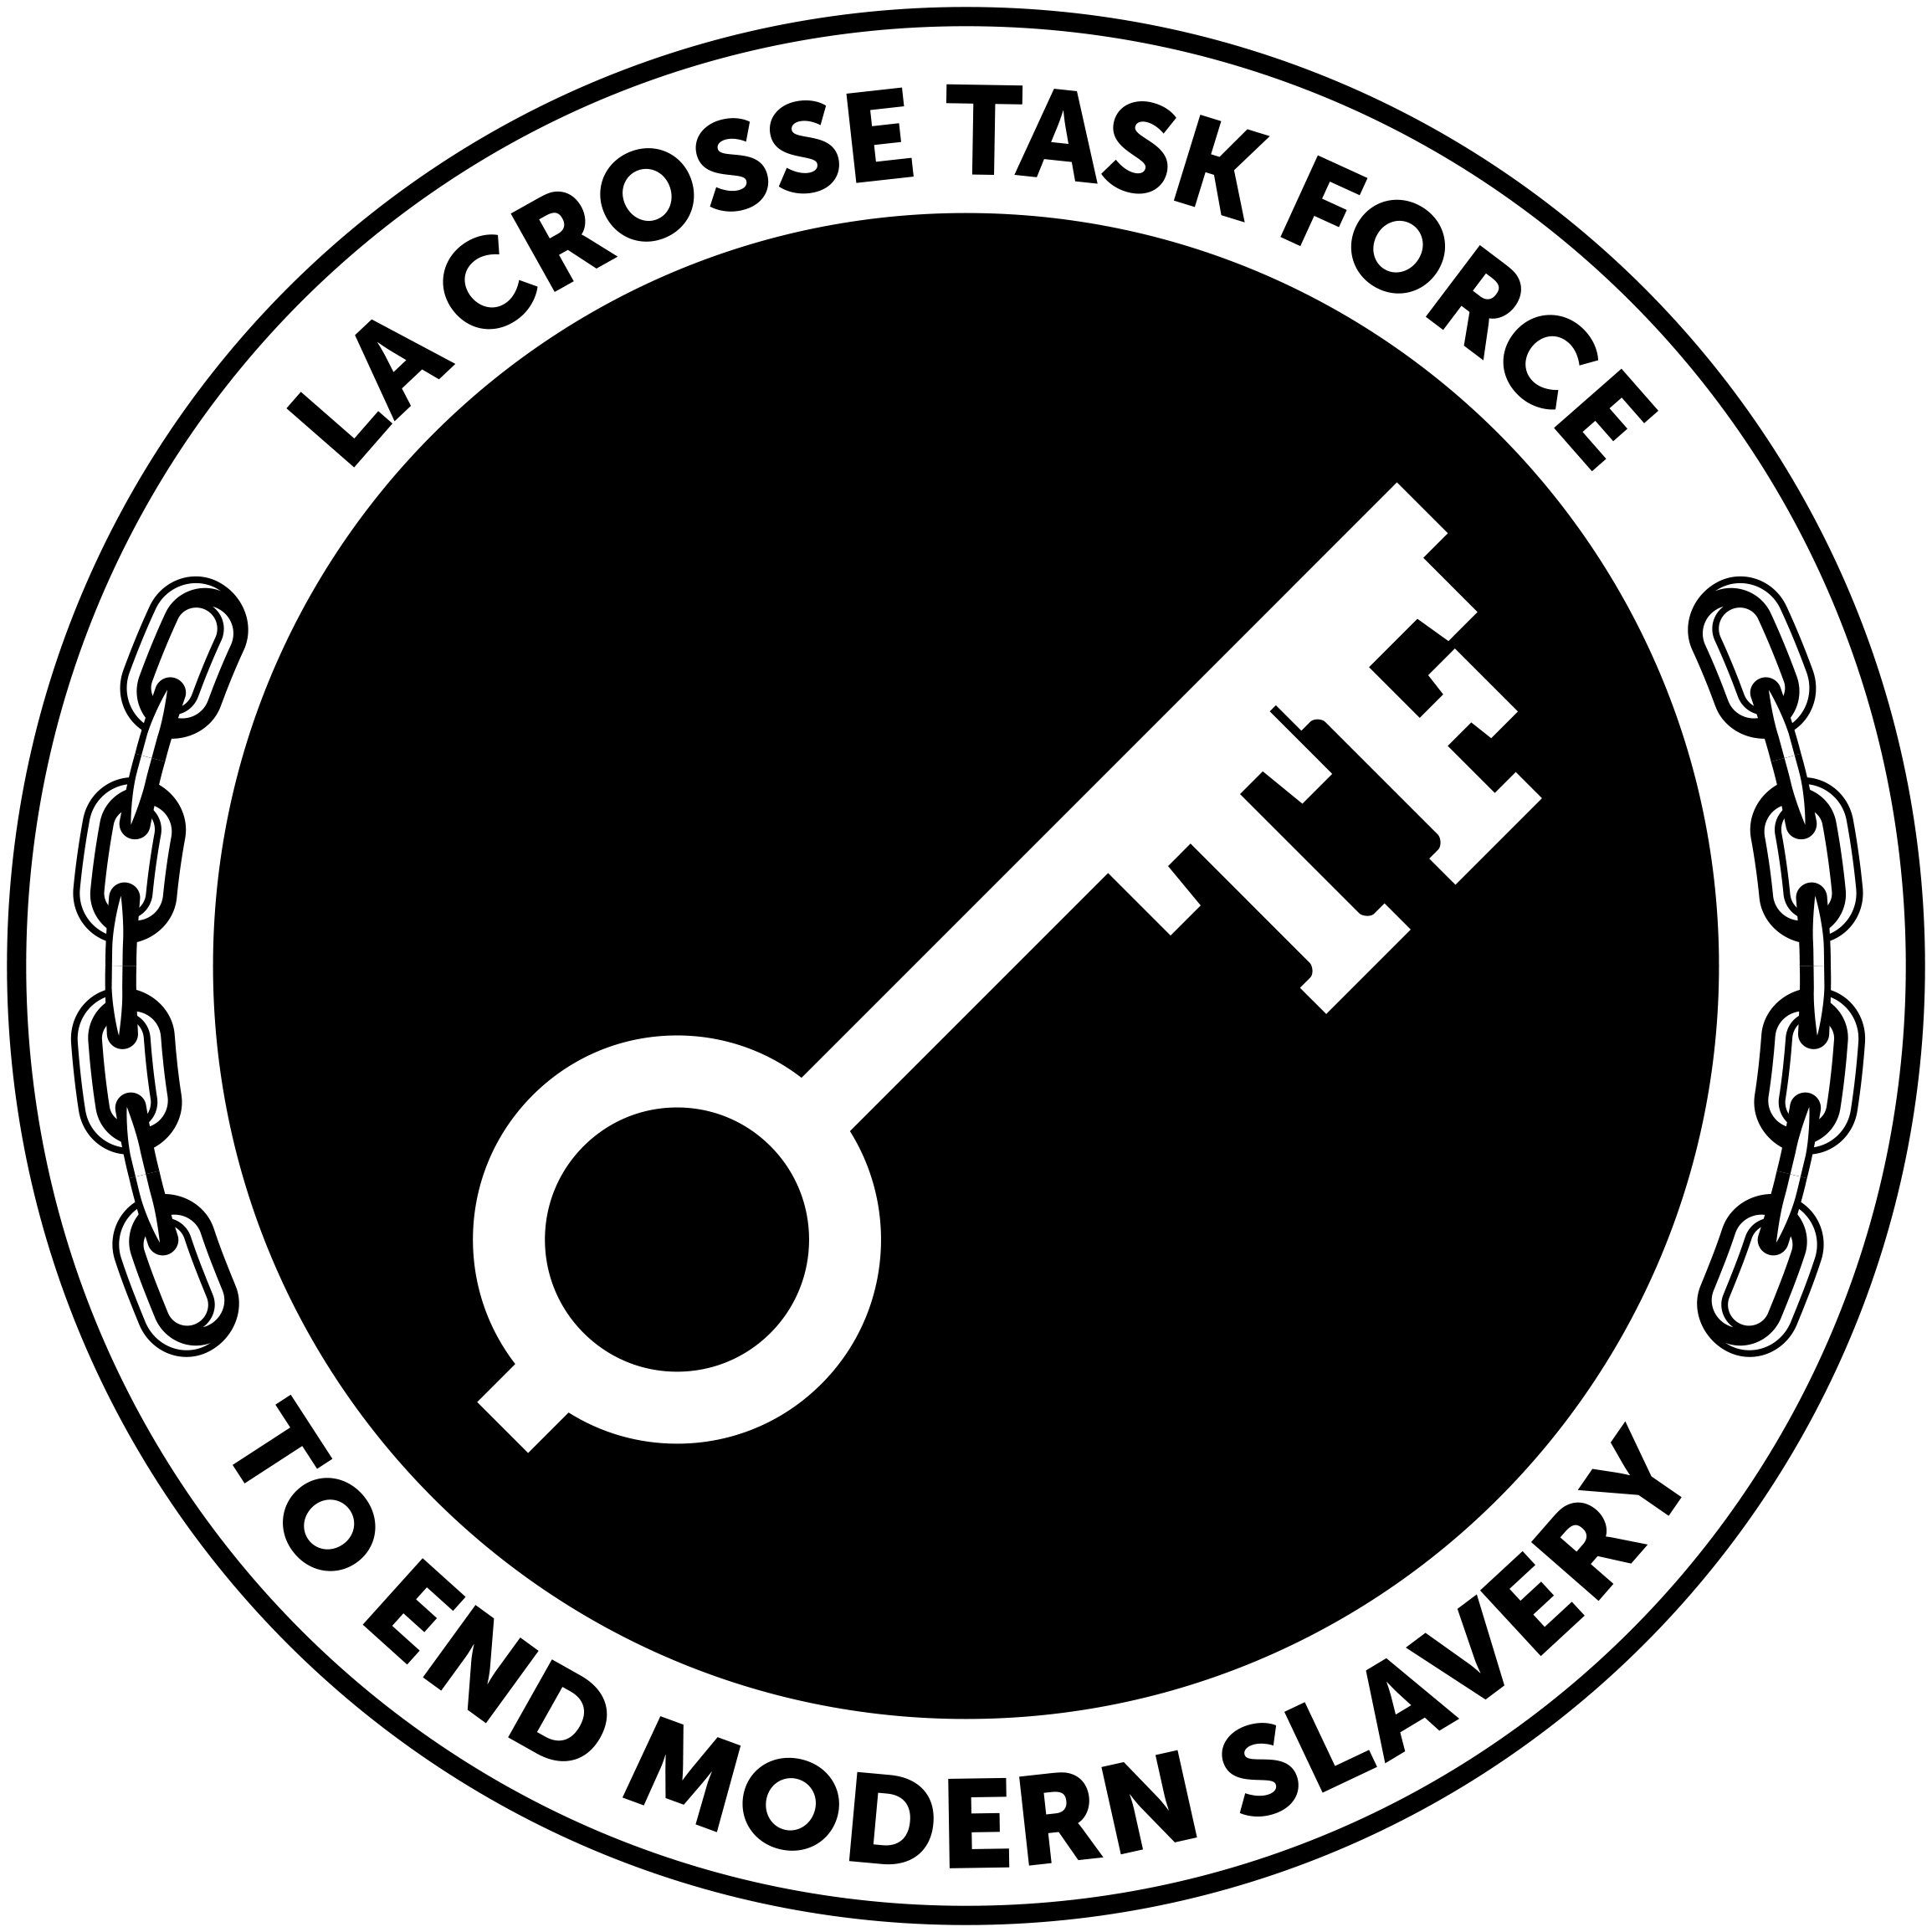 Human Trafficking task force logo